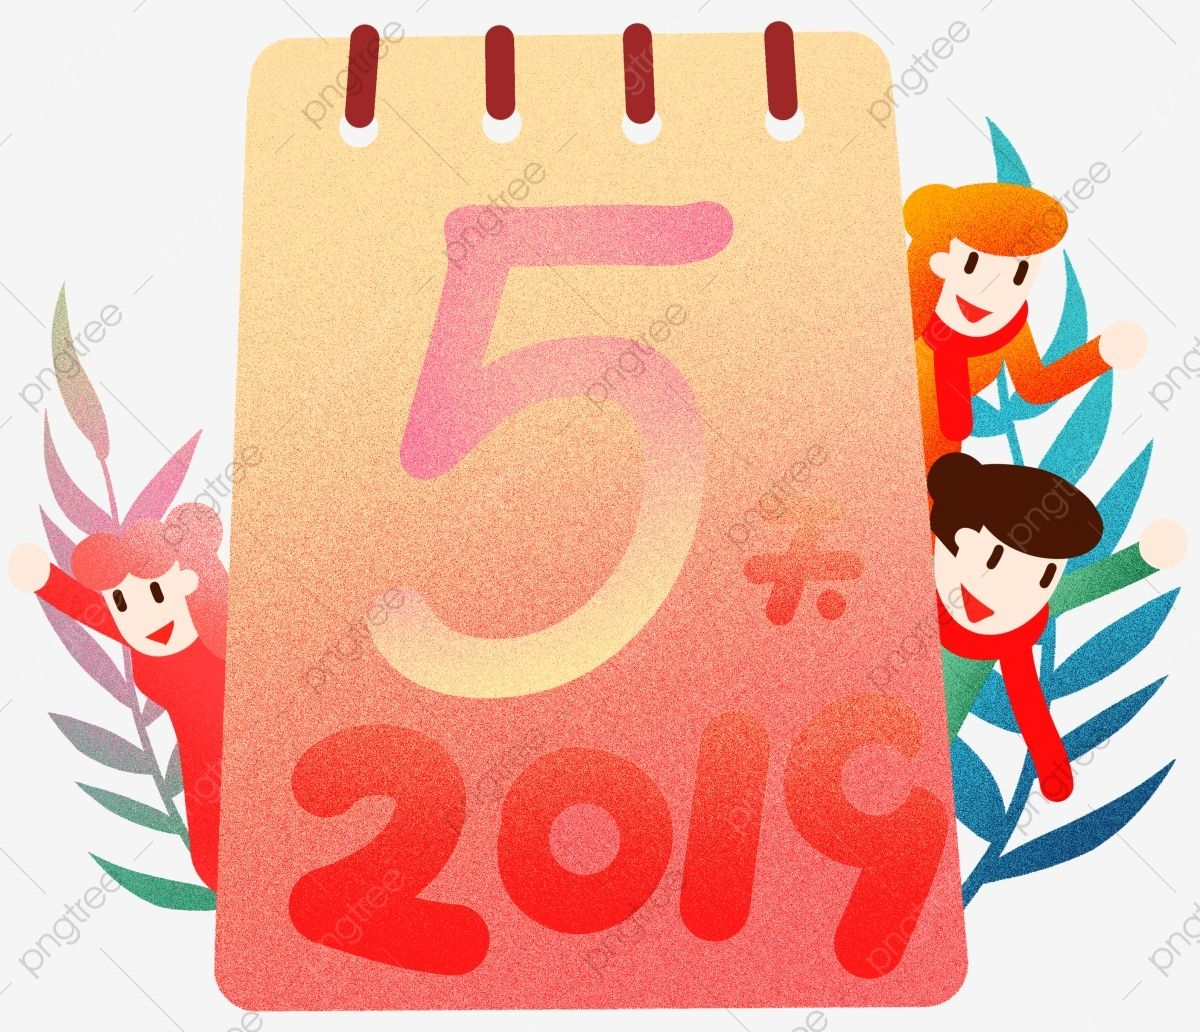 New Year Countdown 5 Illustration Countdown 5 Number Five